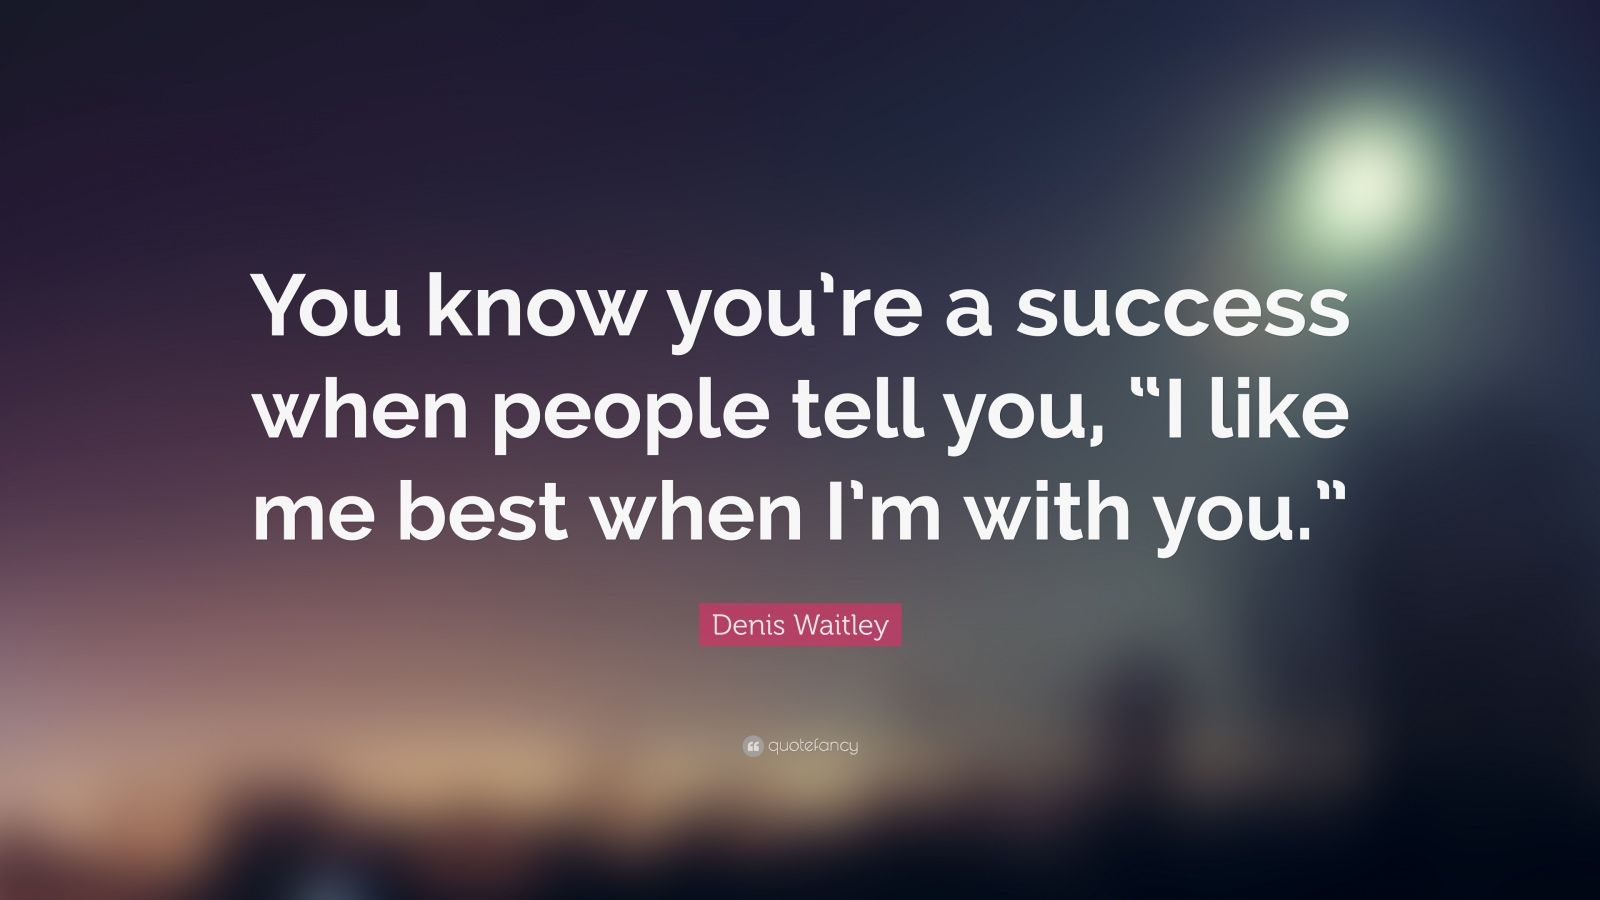 """Denis Waitley Quote: """"You know you're a success when people tell you, """"I like me best when I'm with you."""""""""""